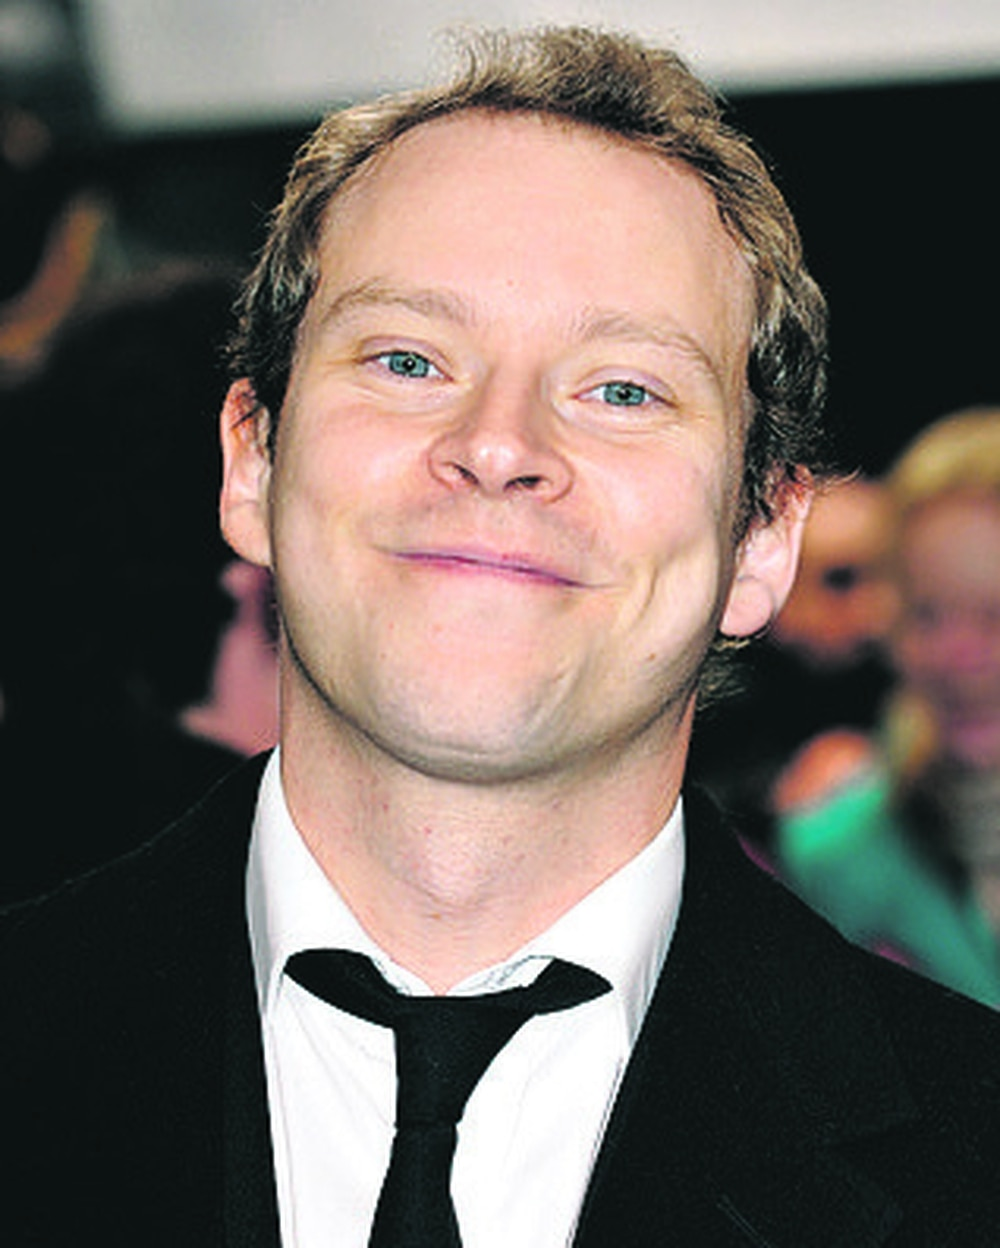 Peep Show Comedian Robert Webb Playing At Glee Club In